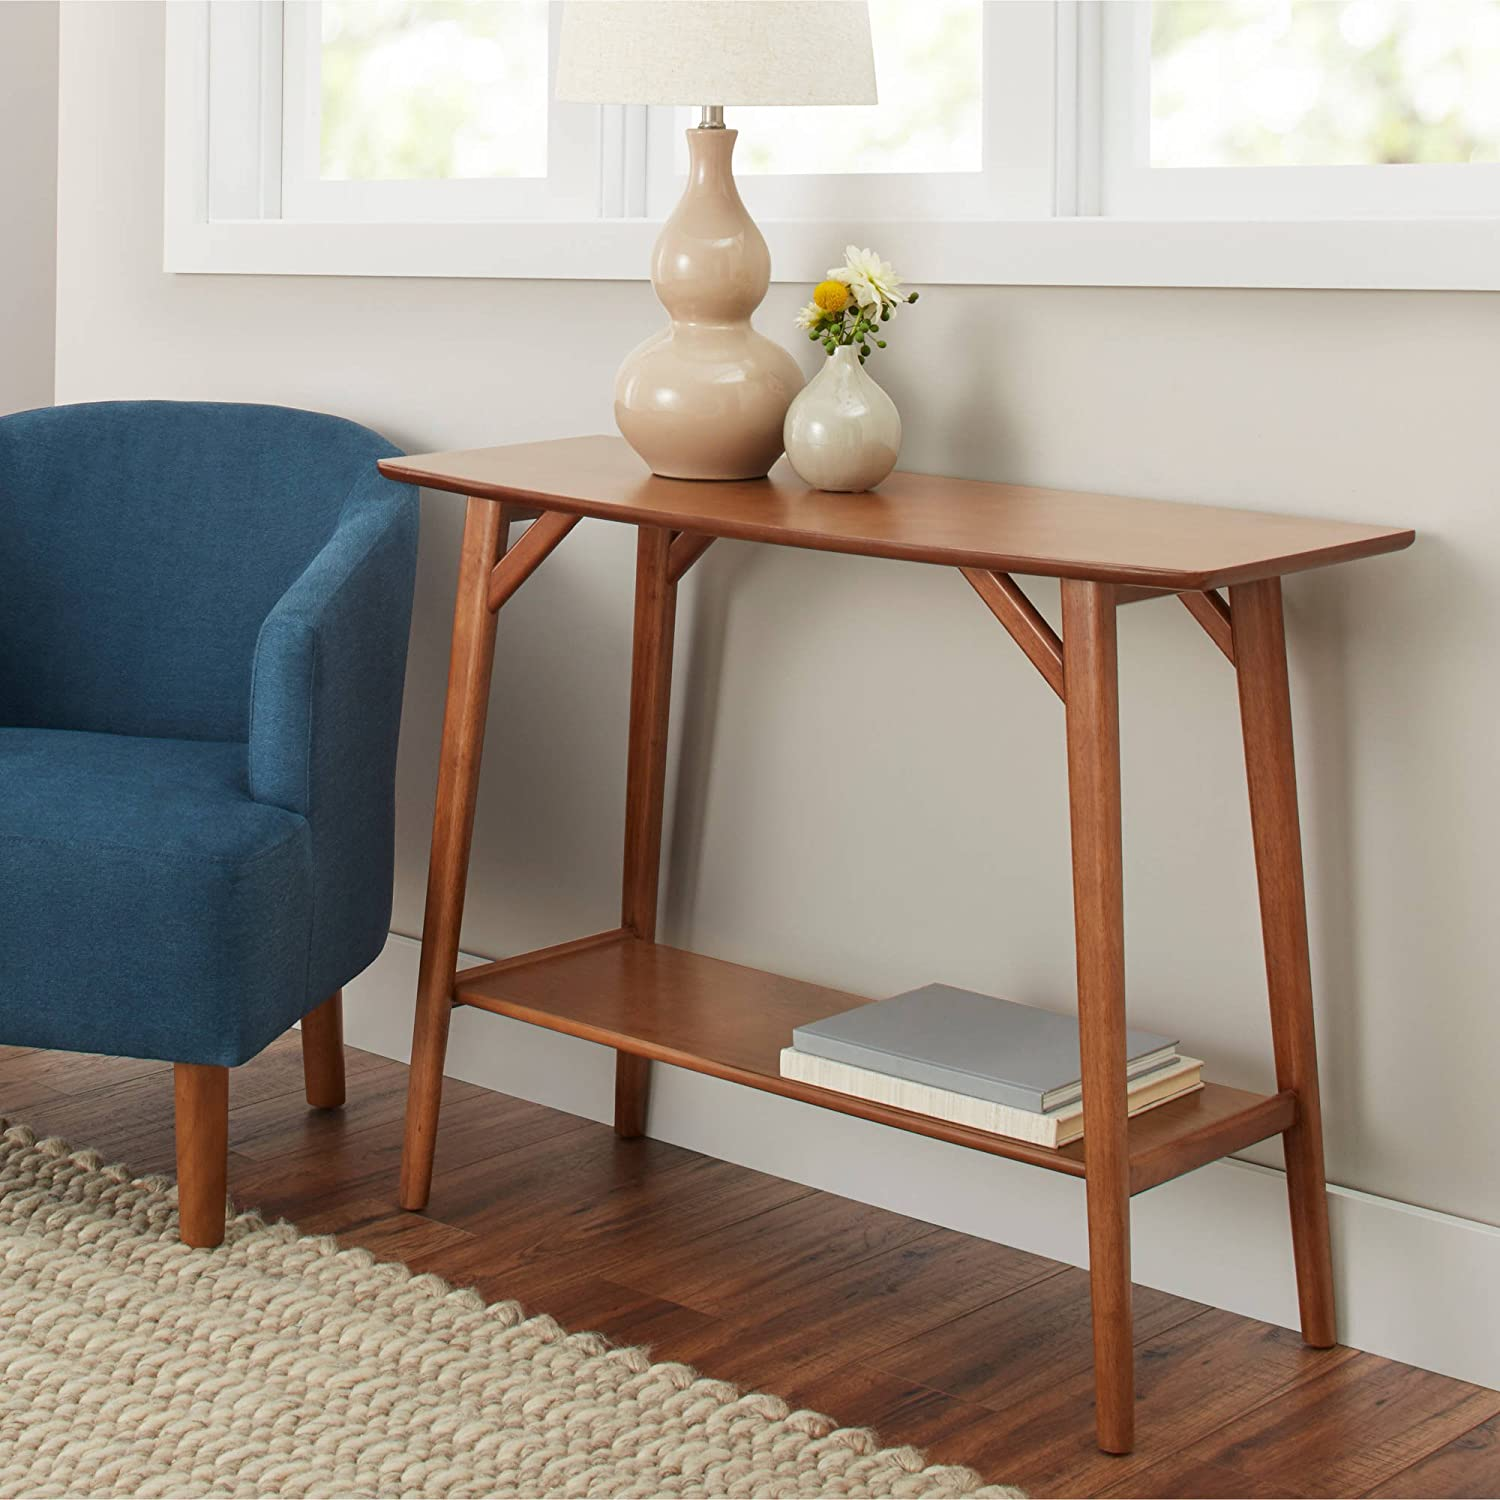 Bhg Reed Mid Century Modern Console Table, Pecan by Better Homes & Gardens